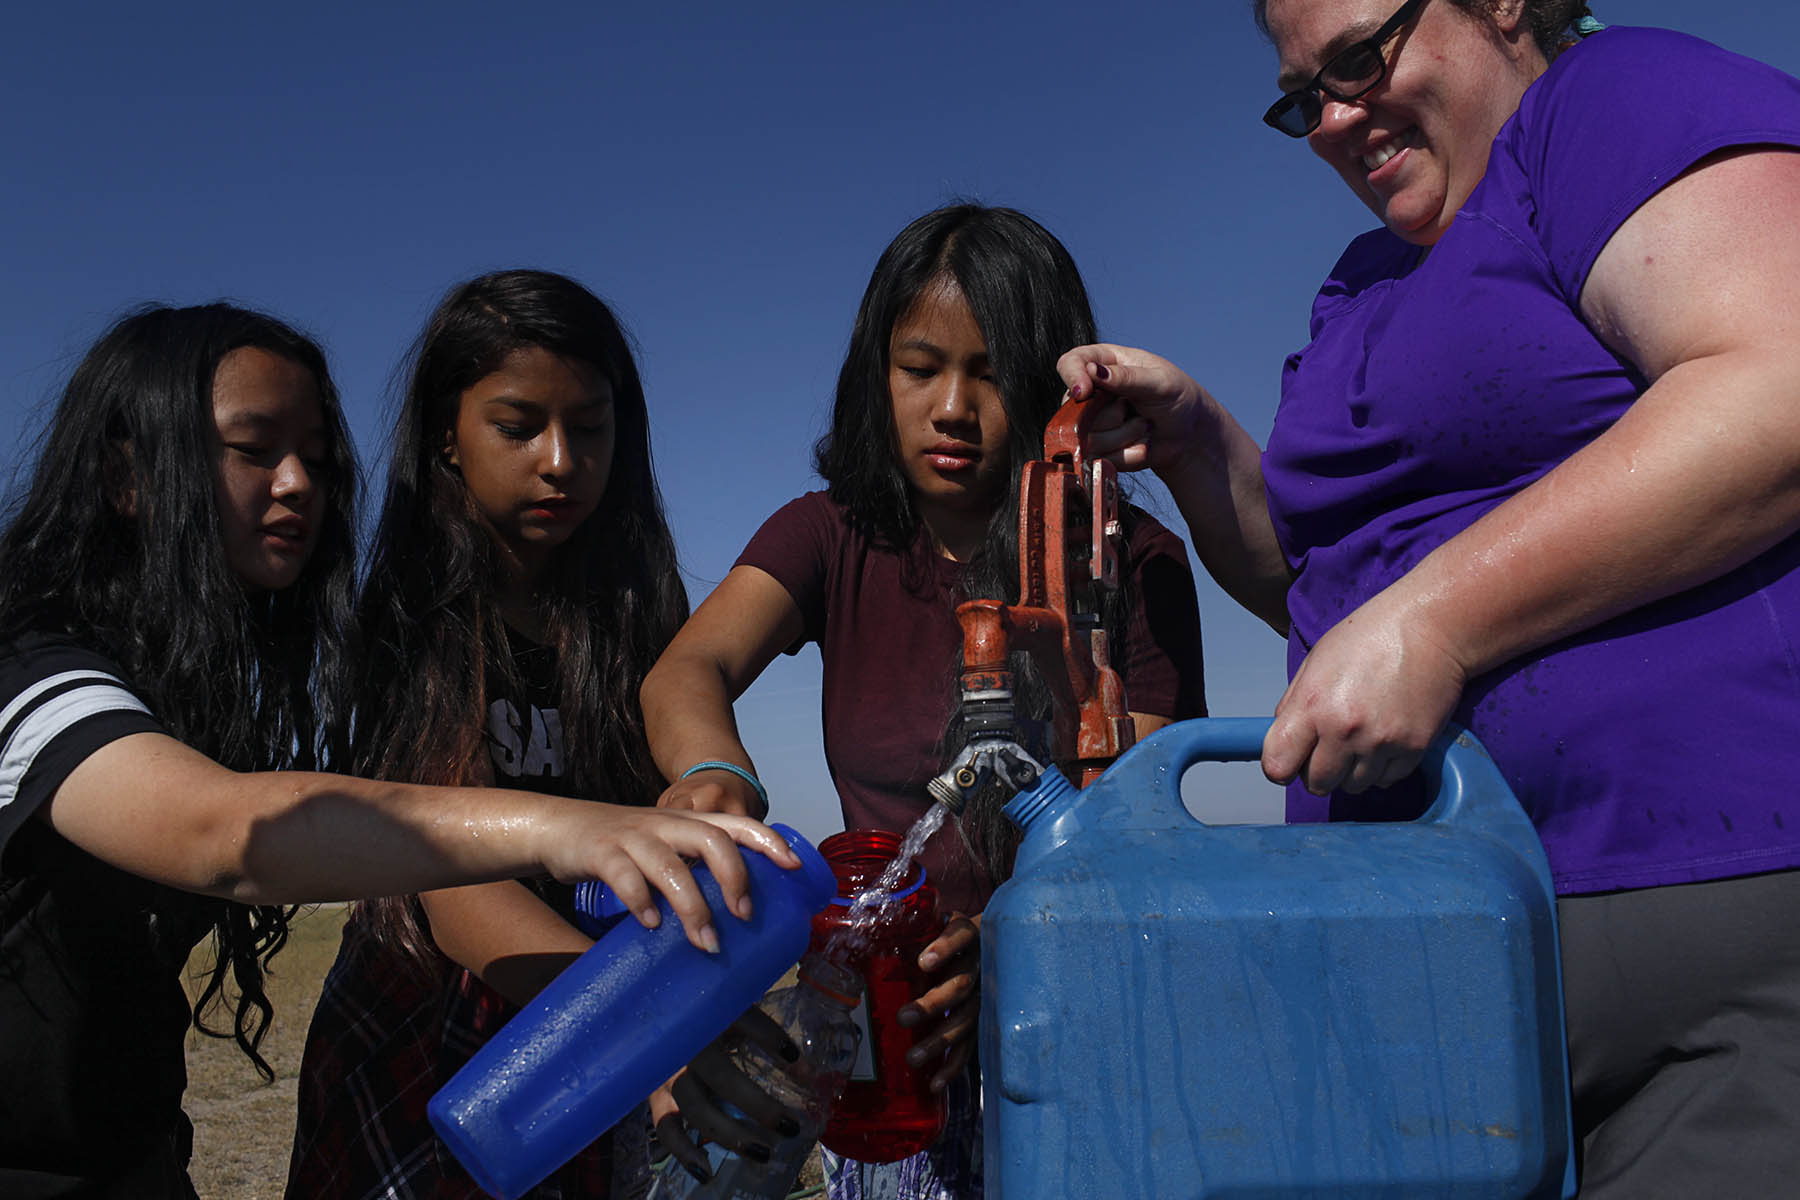 (l-r) Sumina Magar, 14, Sostika Chhetri, 14, Dechen Drukpa, 14, and Jamie Stanley, 33, gather water before making dinner at their campsite in Hooper, Colo. on Sept. 3, 2017. Stanley is the Venturing Crew advisor and is from Denver.